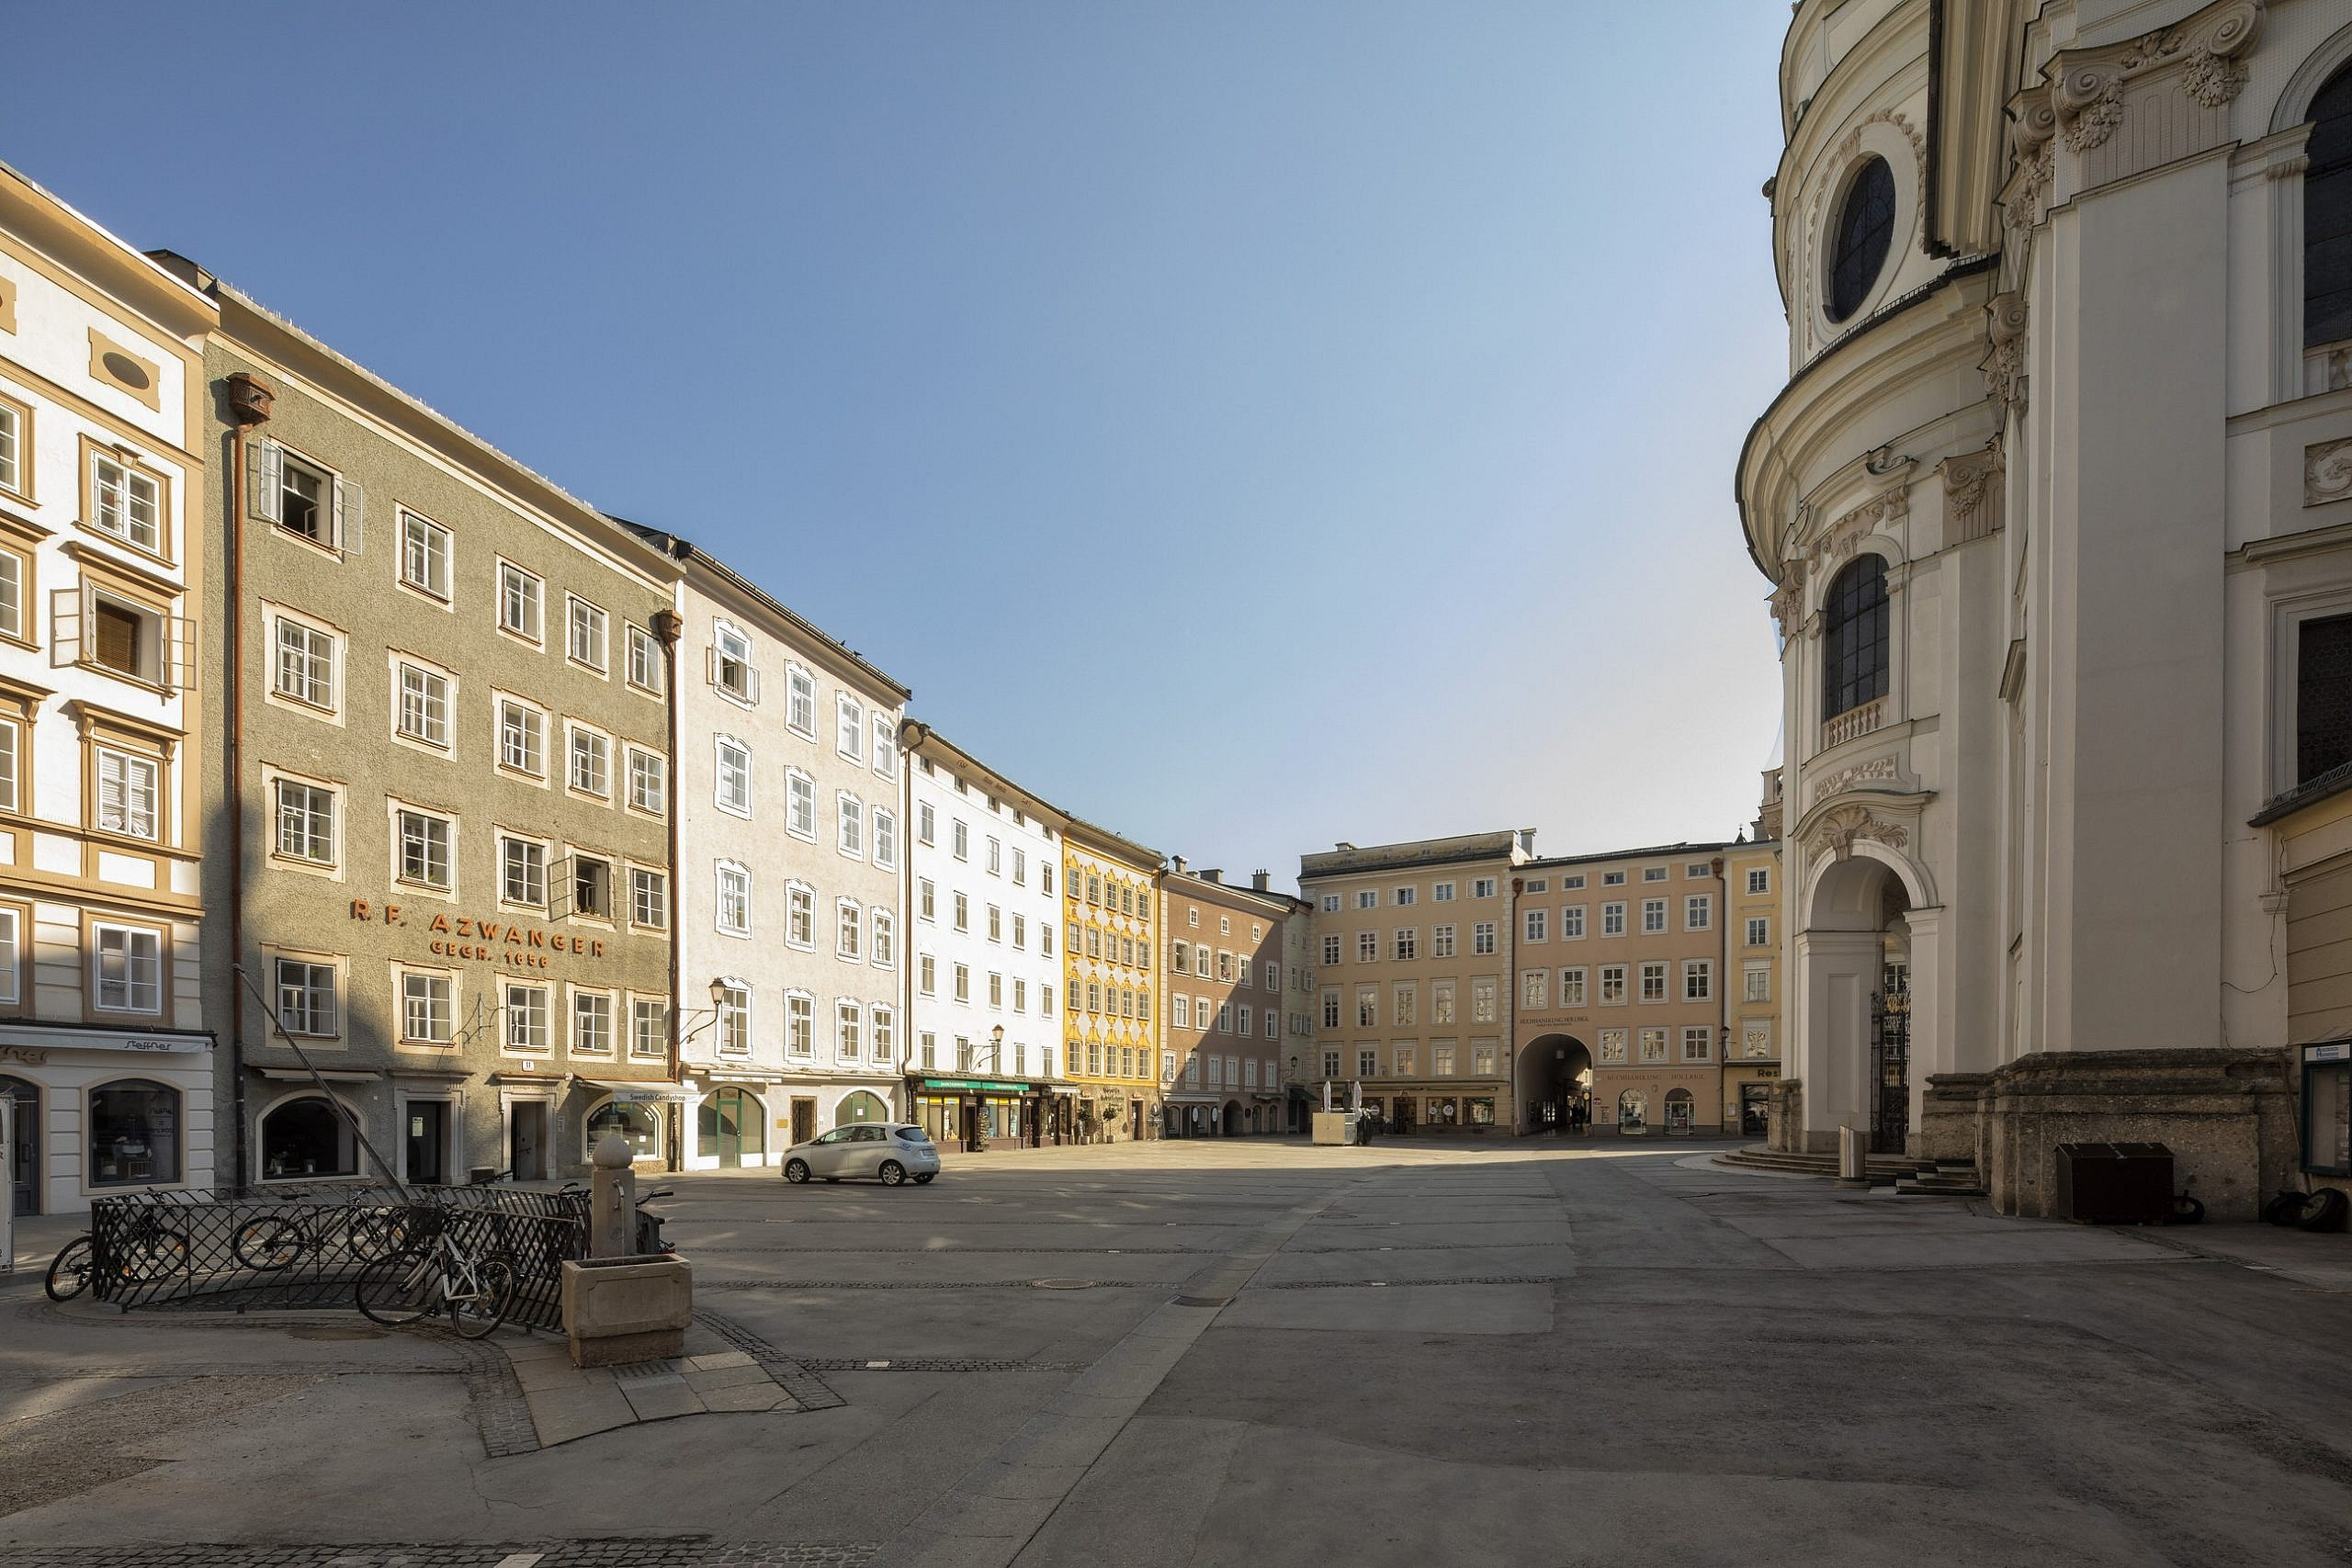 Photograph of an empty Universitätplatz Salzburg